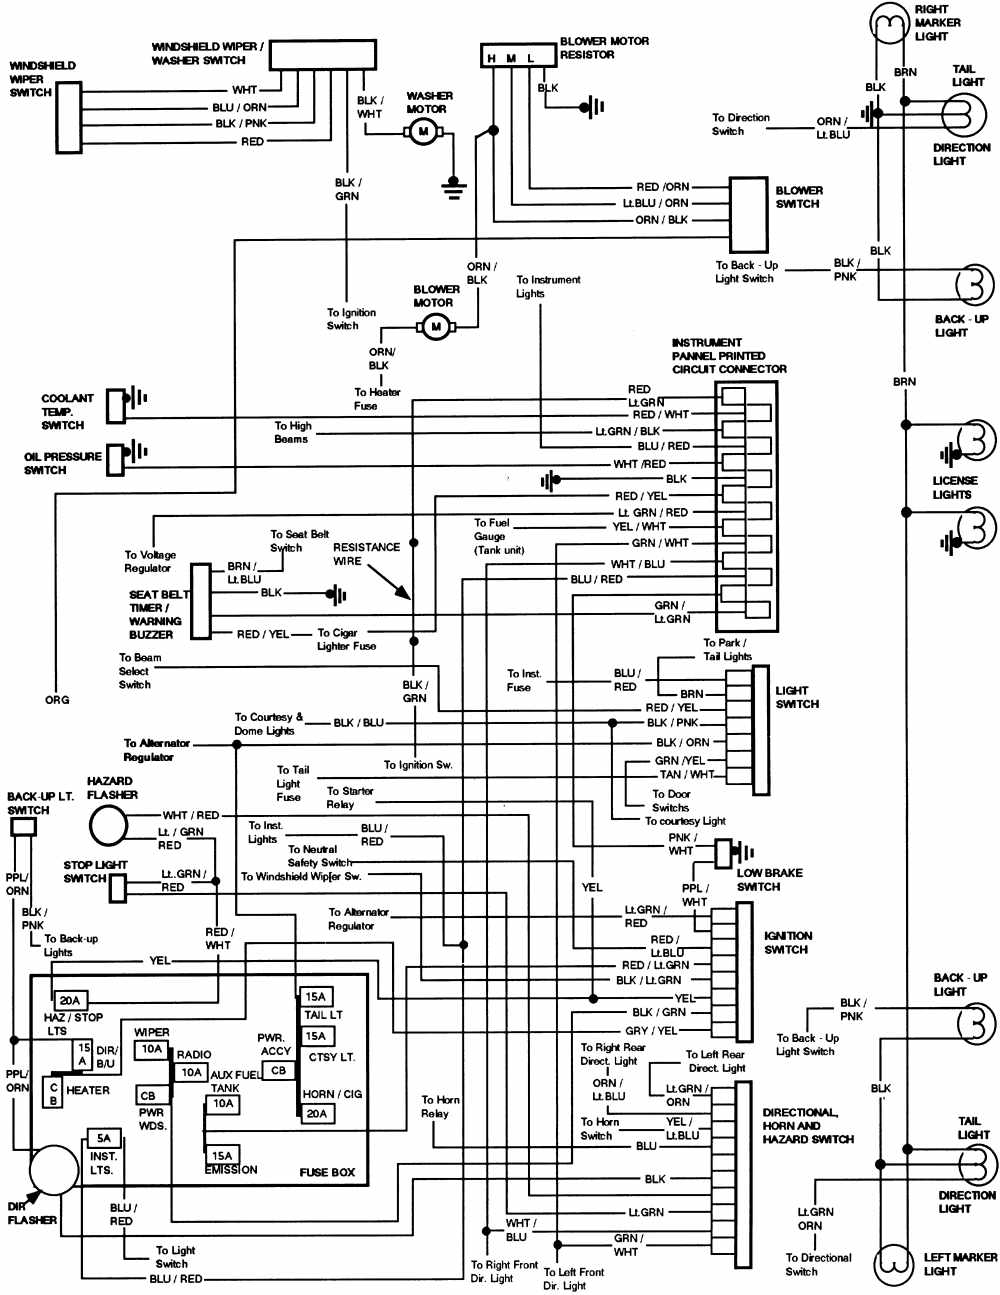 1978 dodge winnebago wiring diagram